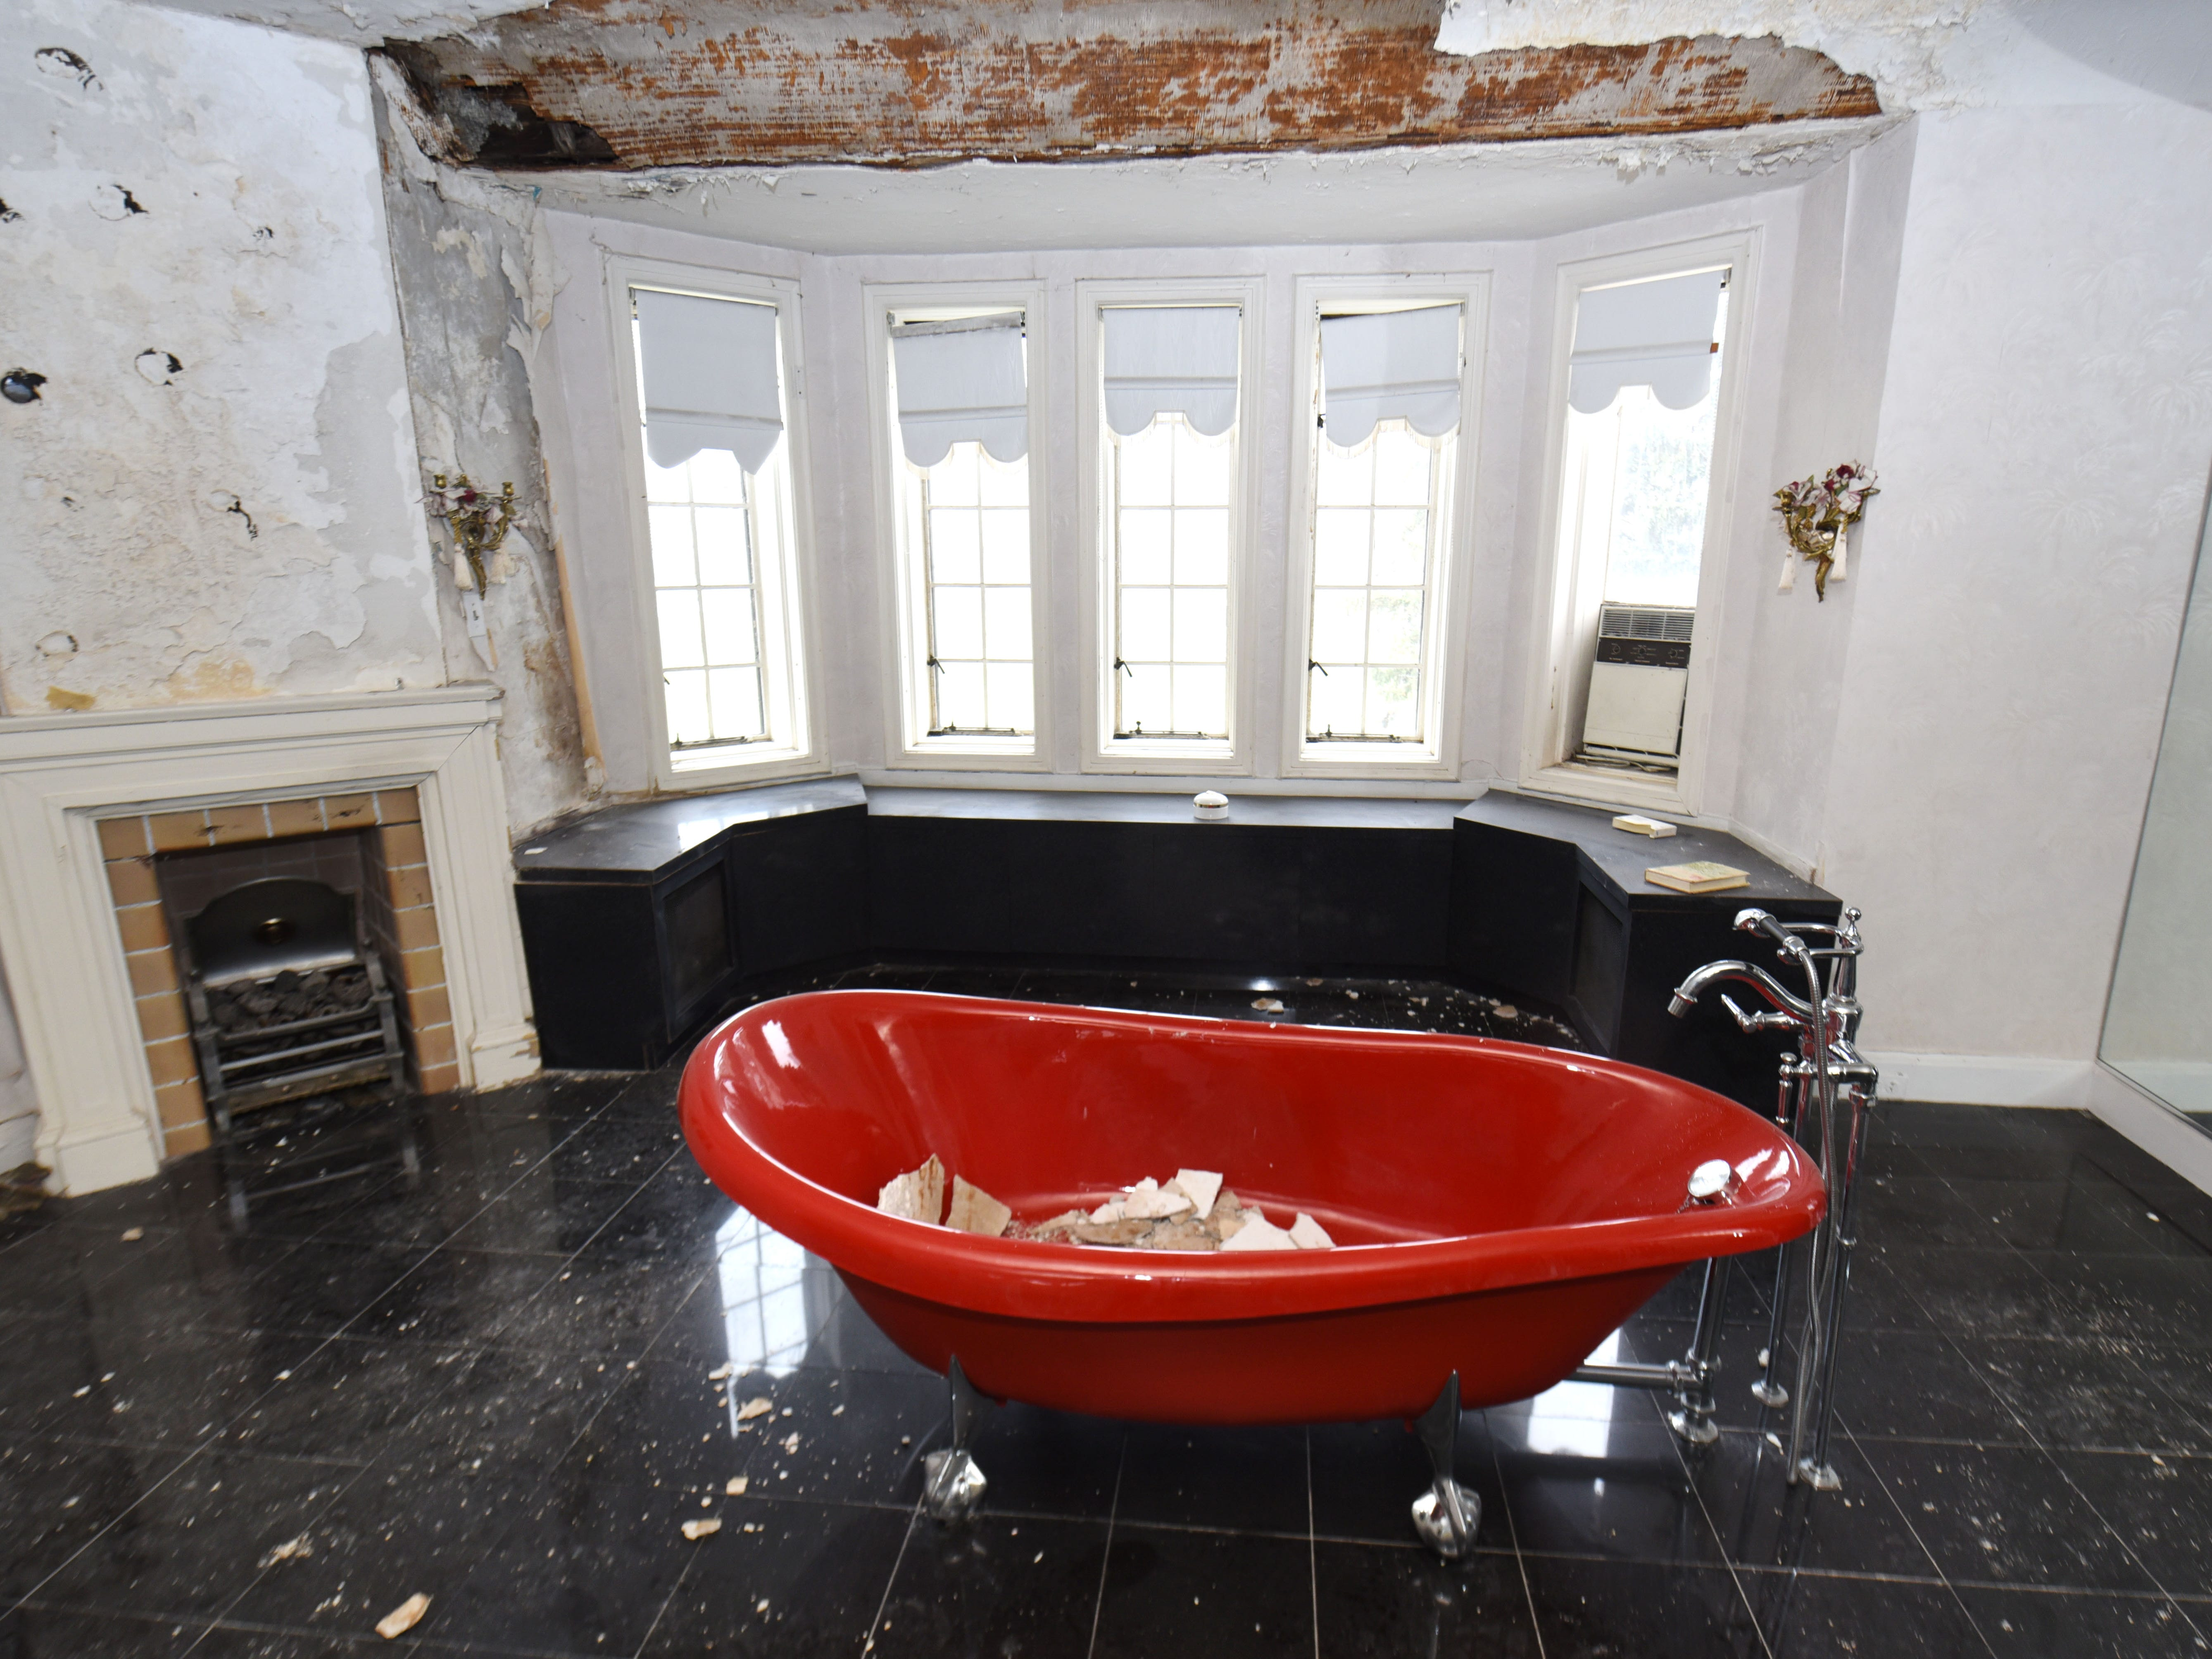 A bright red standing tub is the centerpiece of a grand bathroom at the former home of Aretha Franklin.